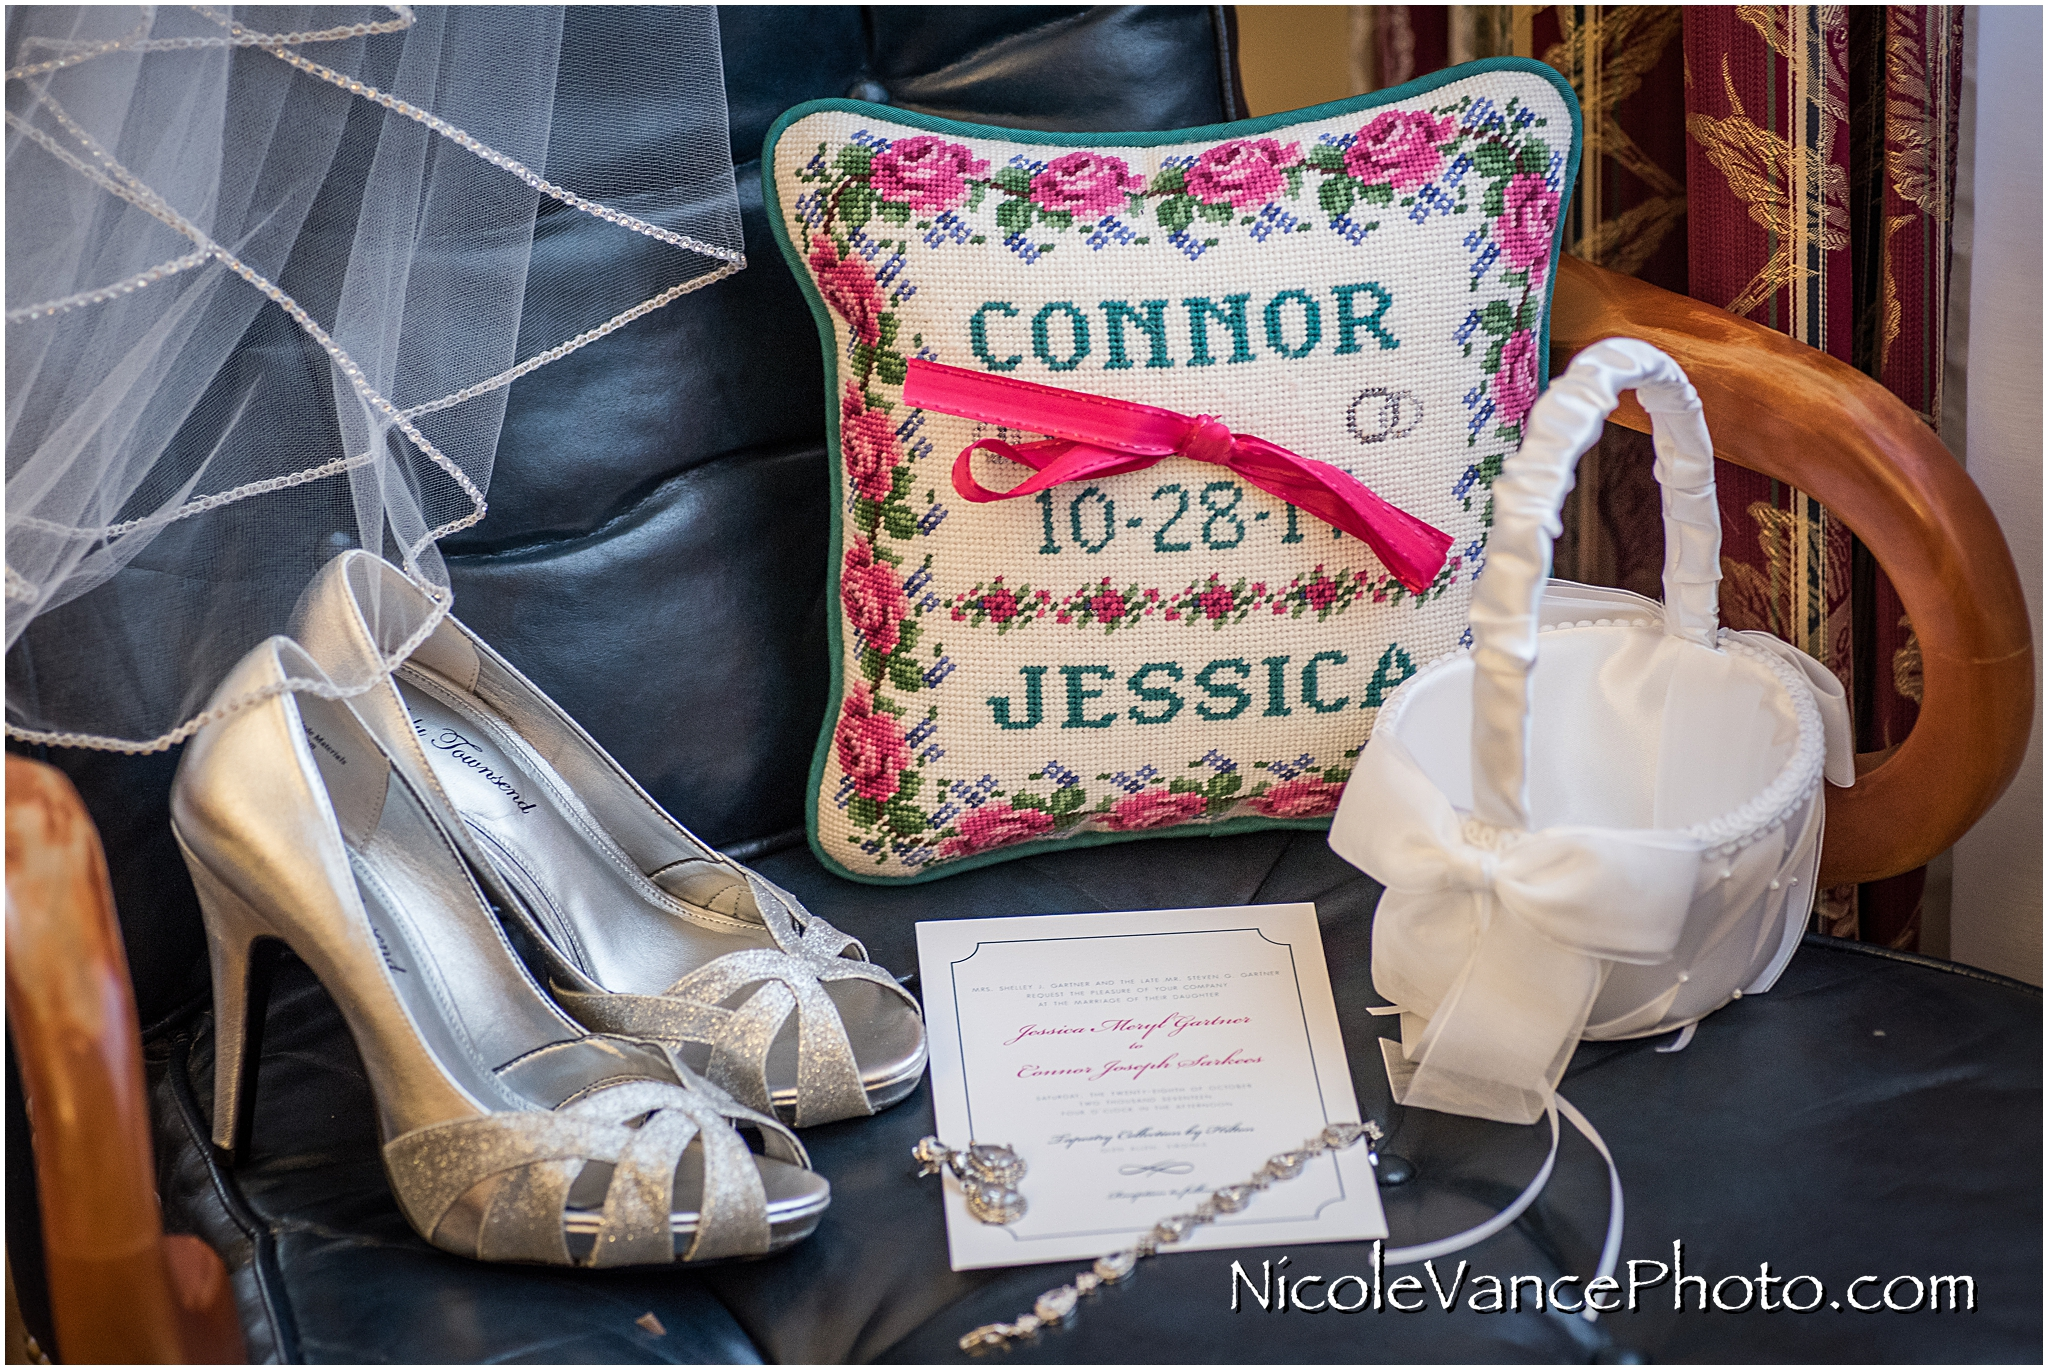 Bridal details at Virginia Crossings; the ring pillow is handmade by the bride's mom.